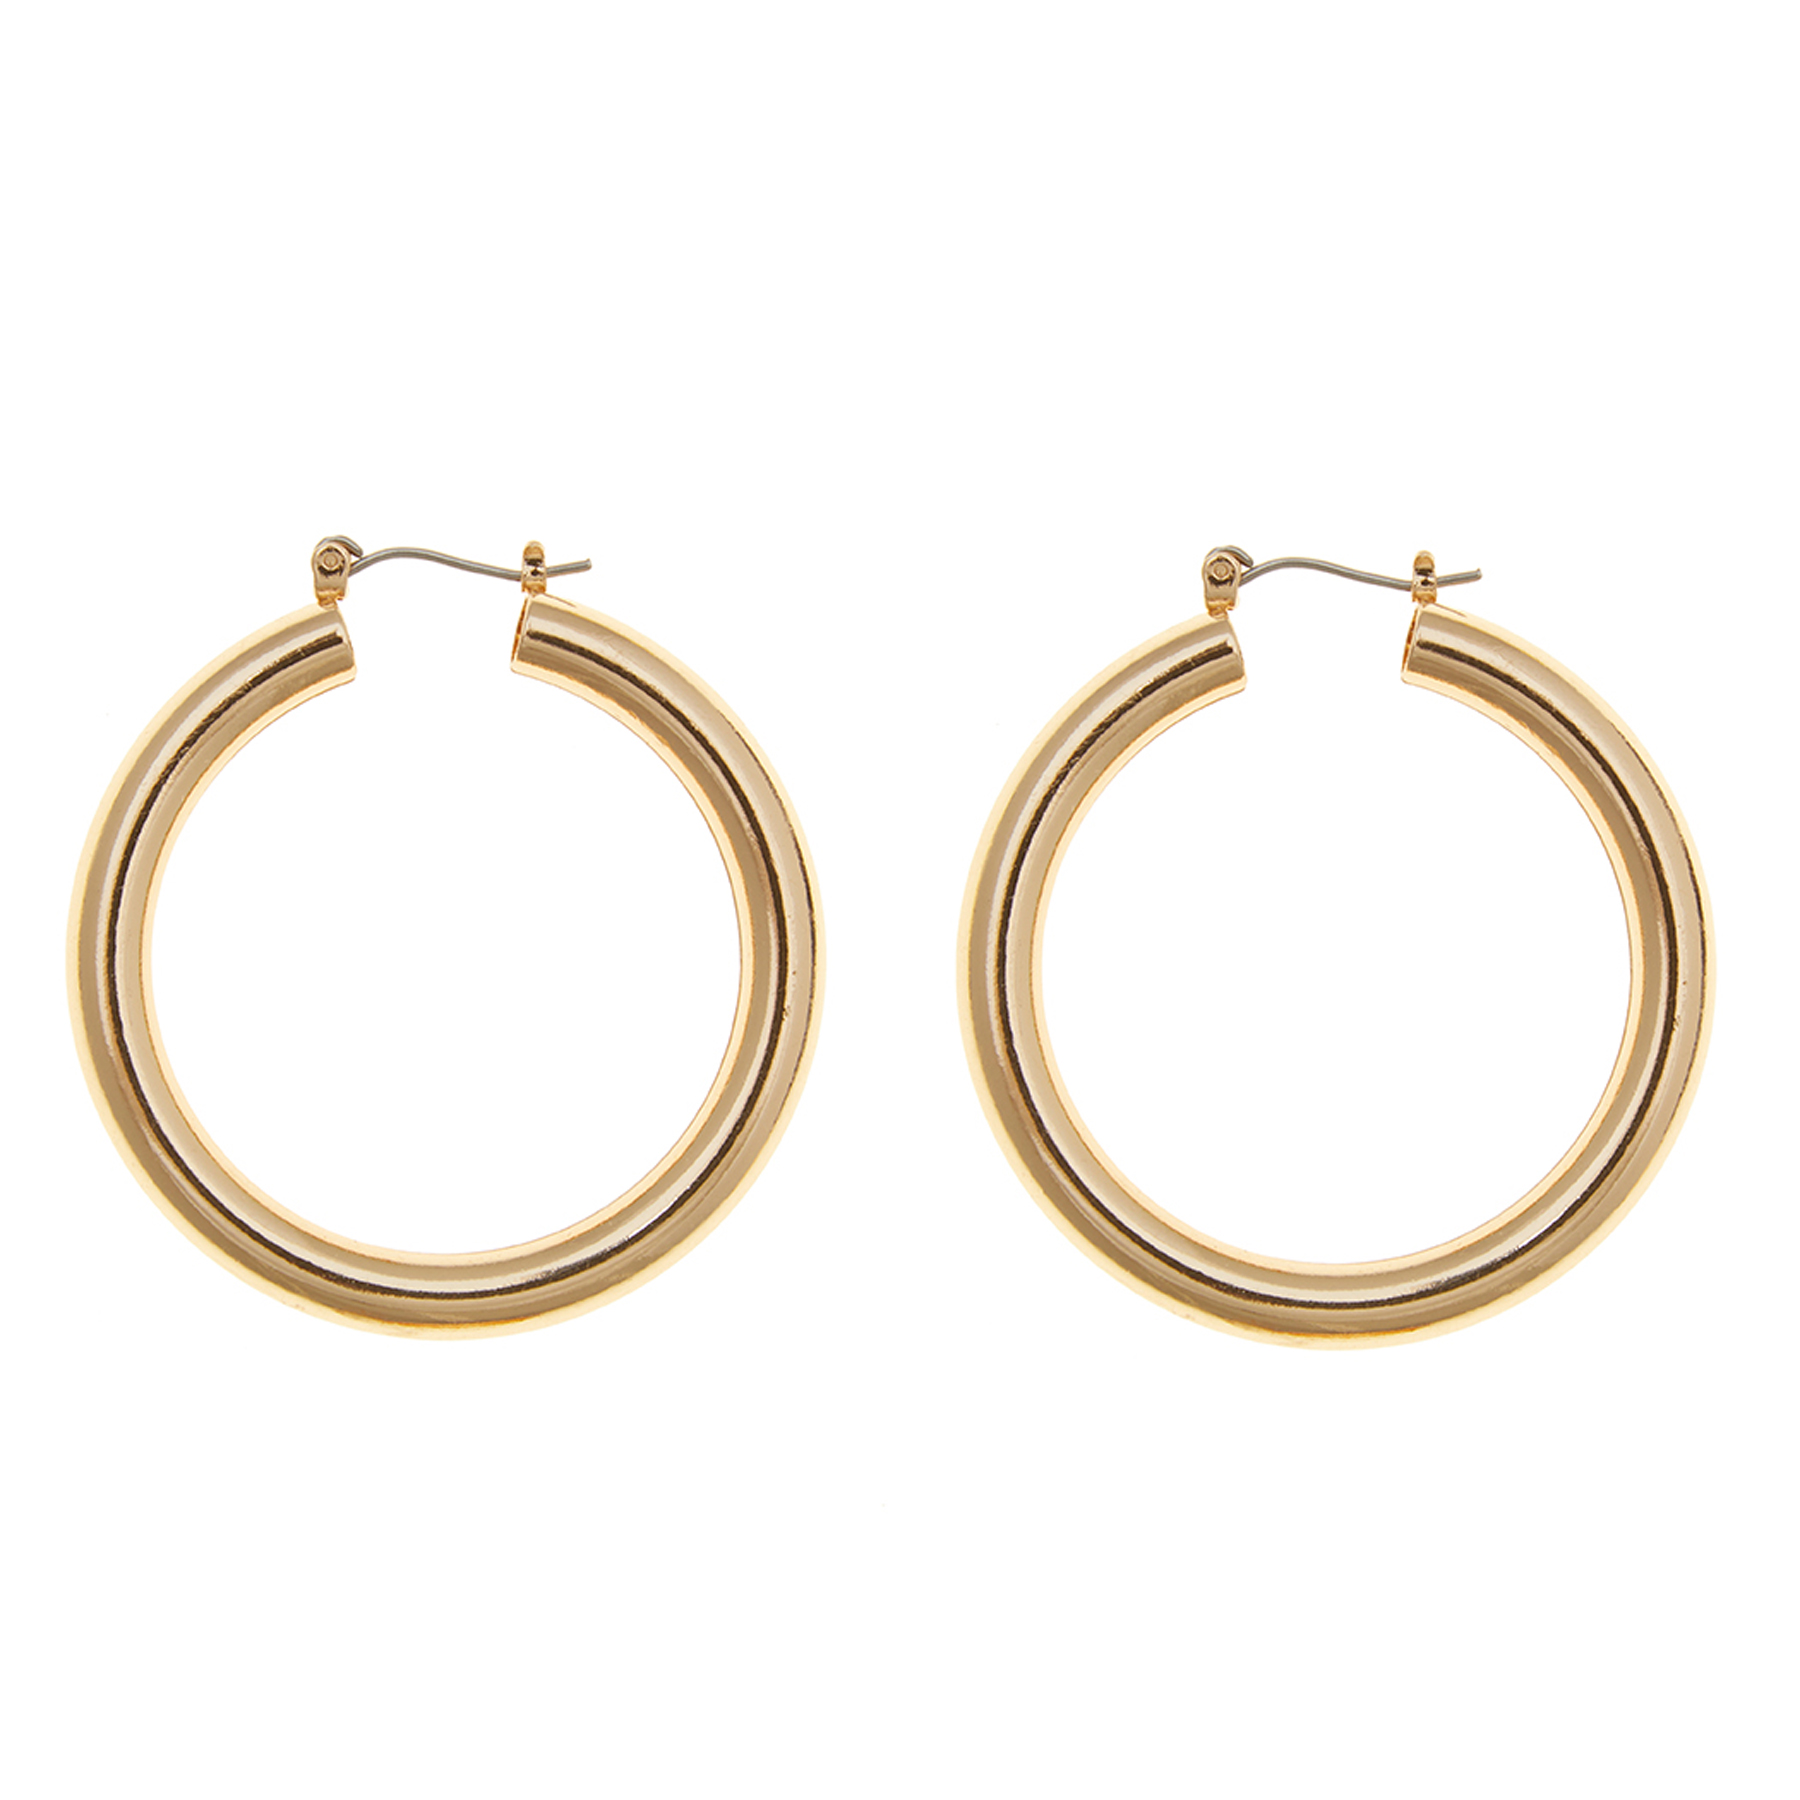 Cheap Christmas Gifts: Eloquii Medium Tube Hoop Earrings in Gold